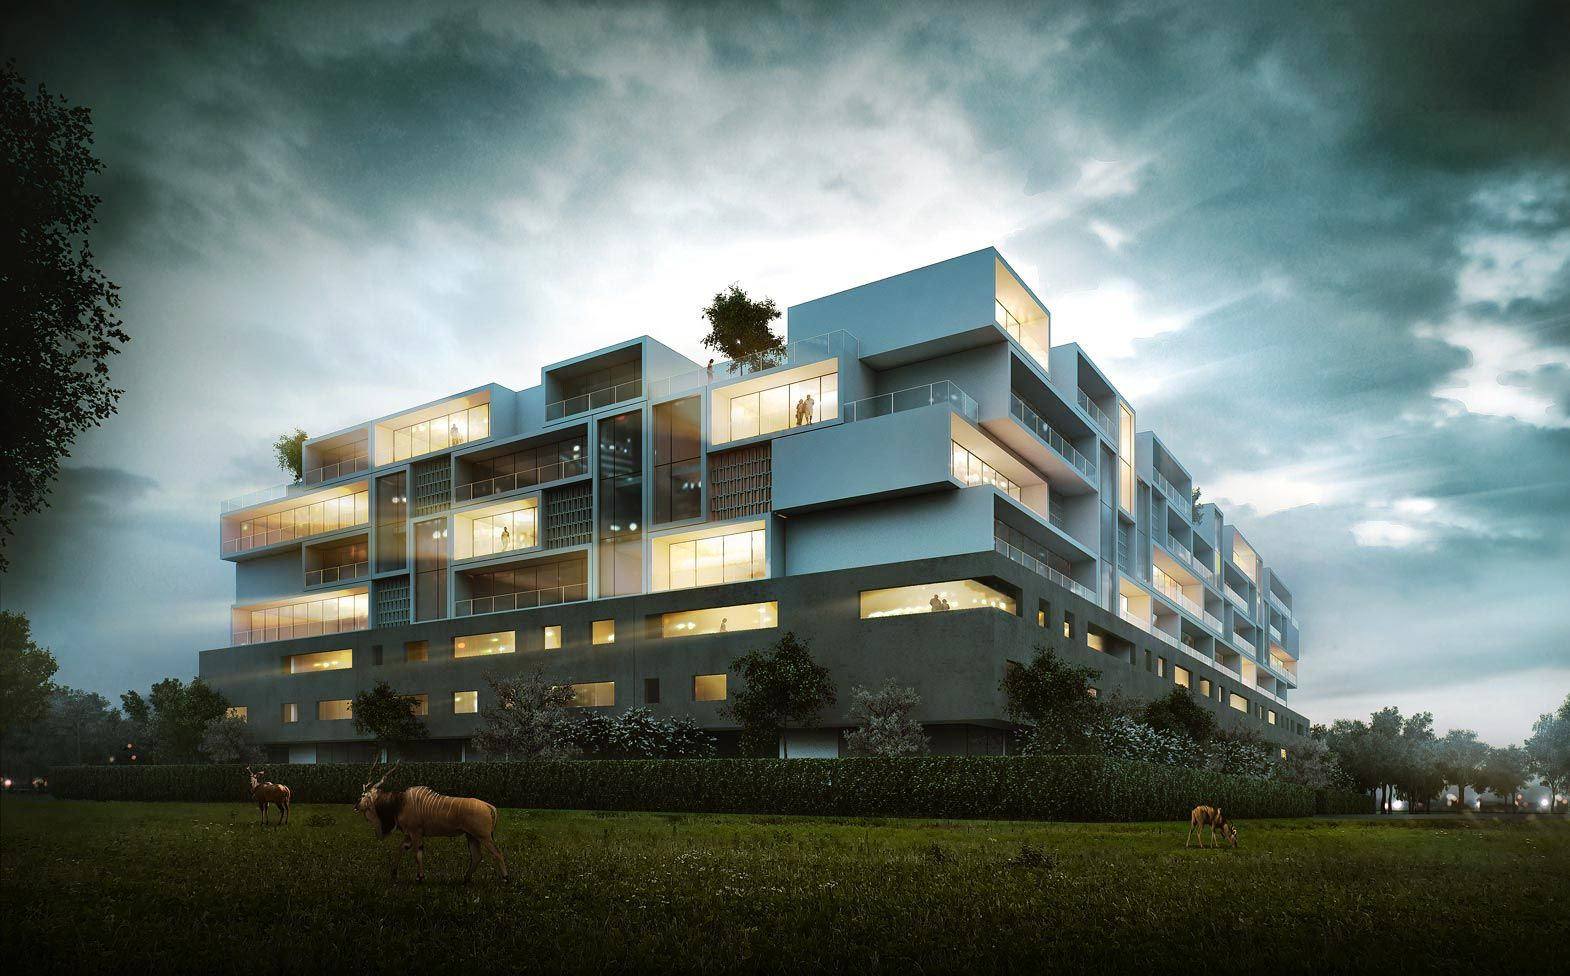 Architektur Rendering Welches Programm Sergio Mereces Nice 3d Render Project For The Client